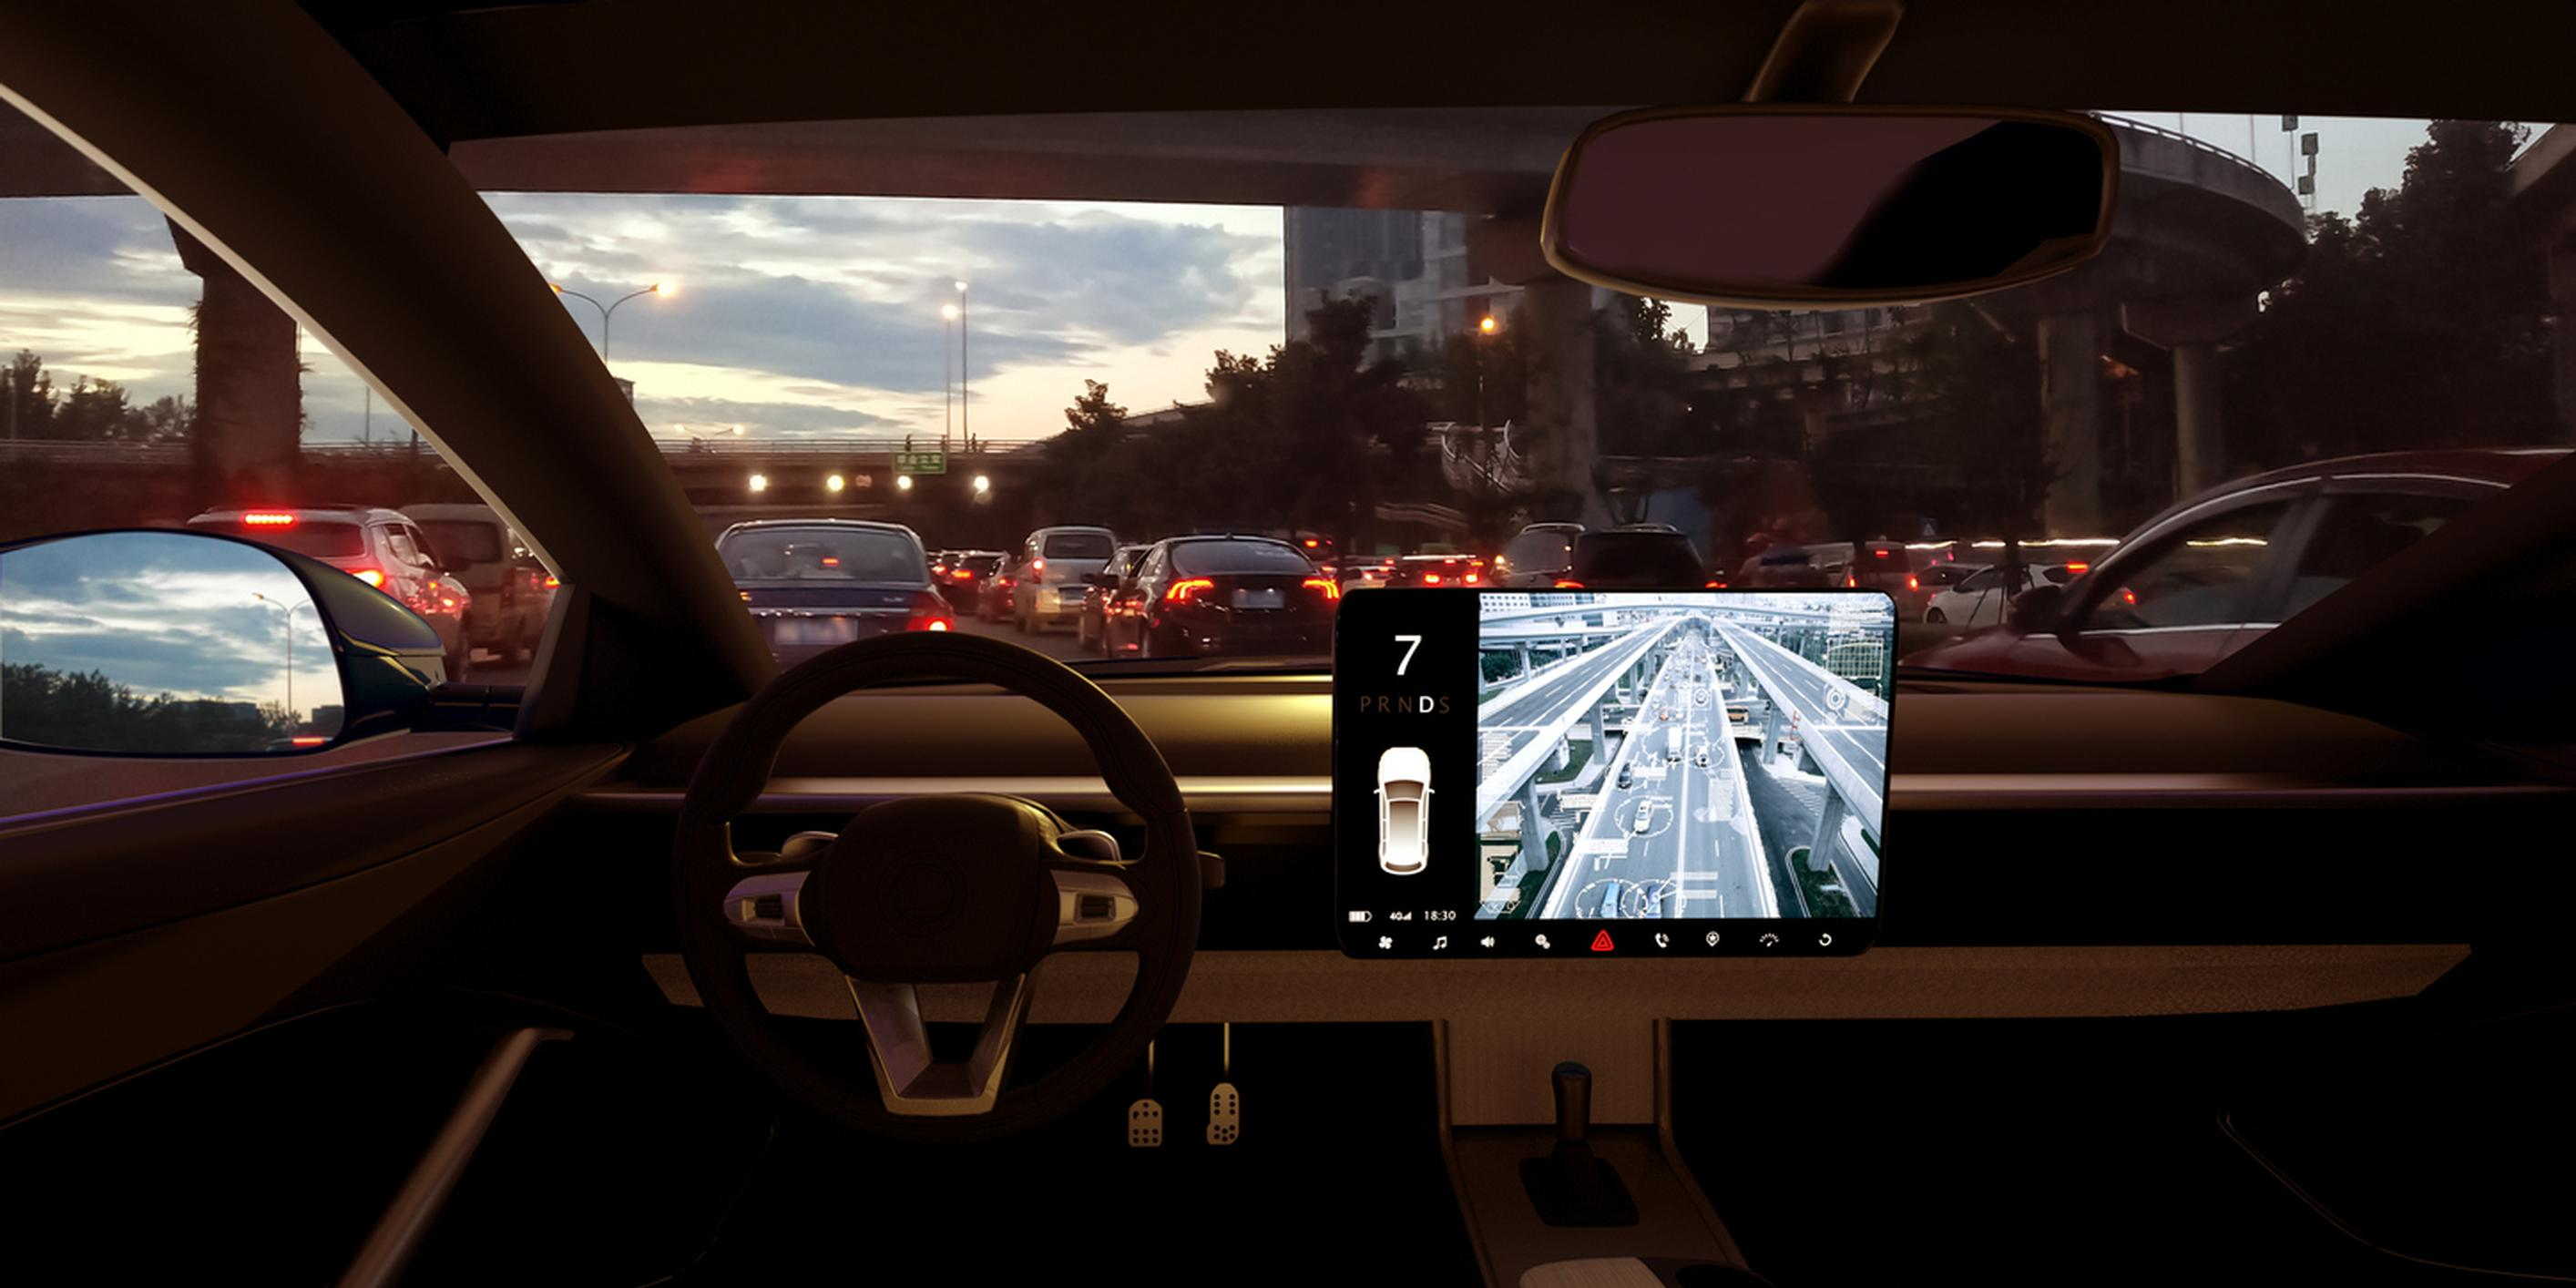 BuyaCar.co.uk says that underlying what appears to be growing scepticism around autonomous vehicles appear to be fears about giving up control and the potential for technology to go wrong